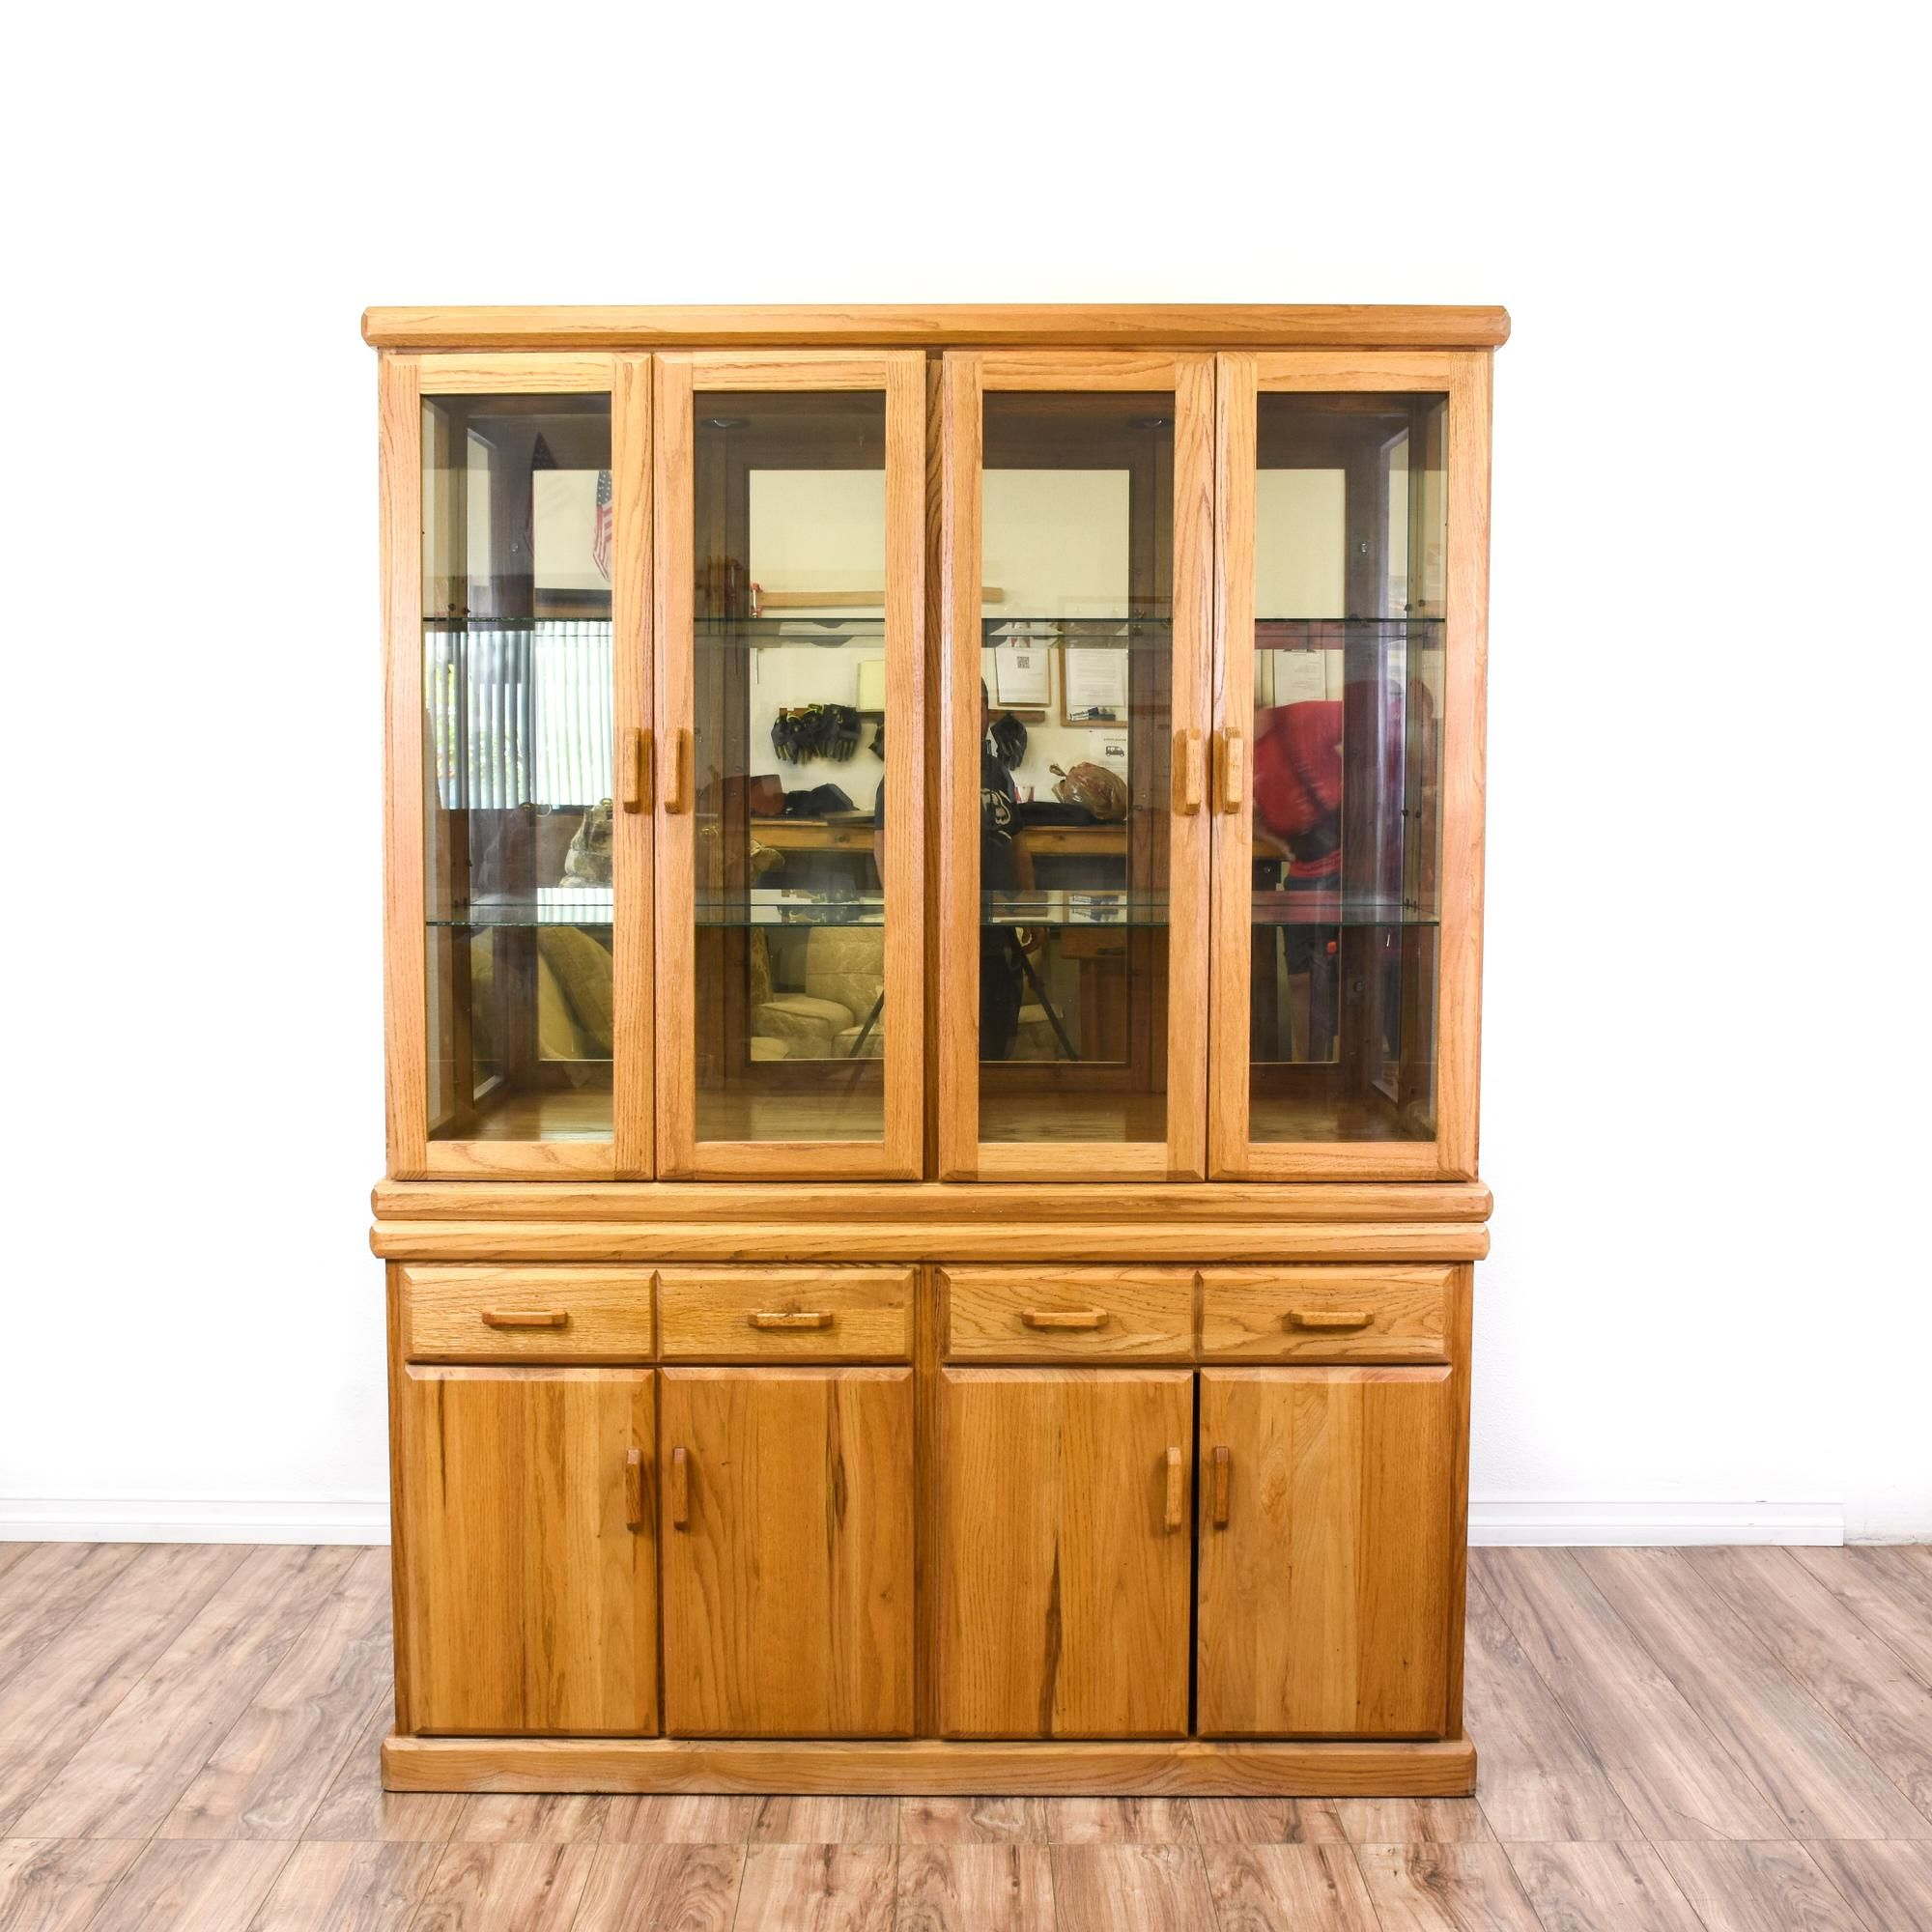 Charmant This China Cabinet Is Featured In A Solid Wood With A Light Oak Finish. This